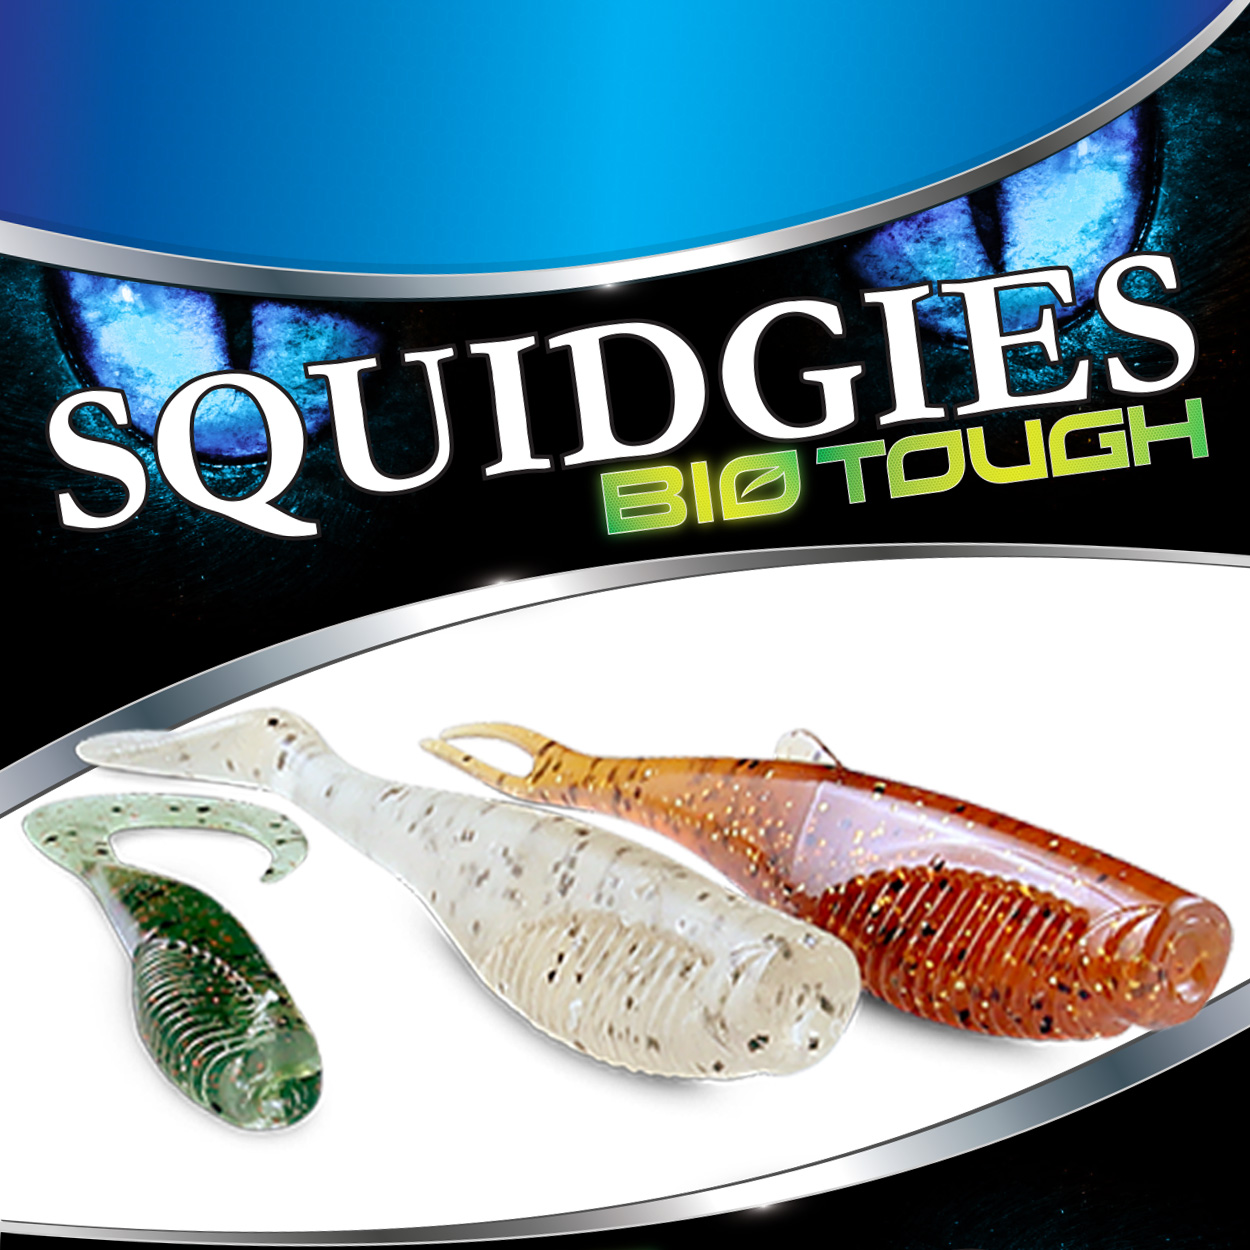 The Squidgies Bio Tough Story